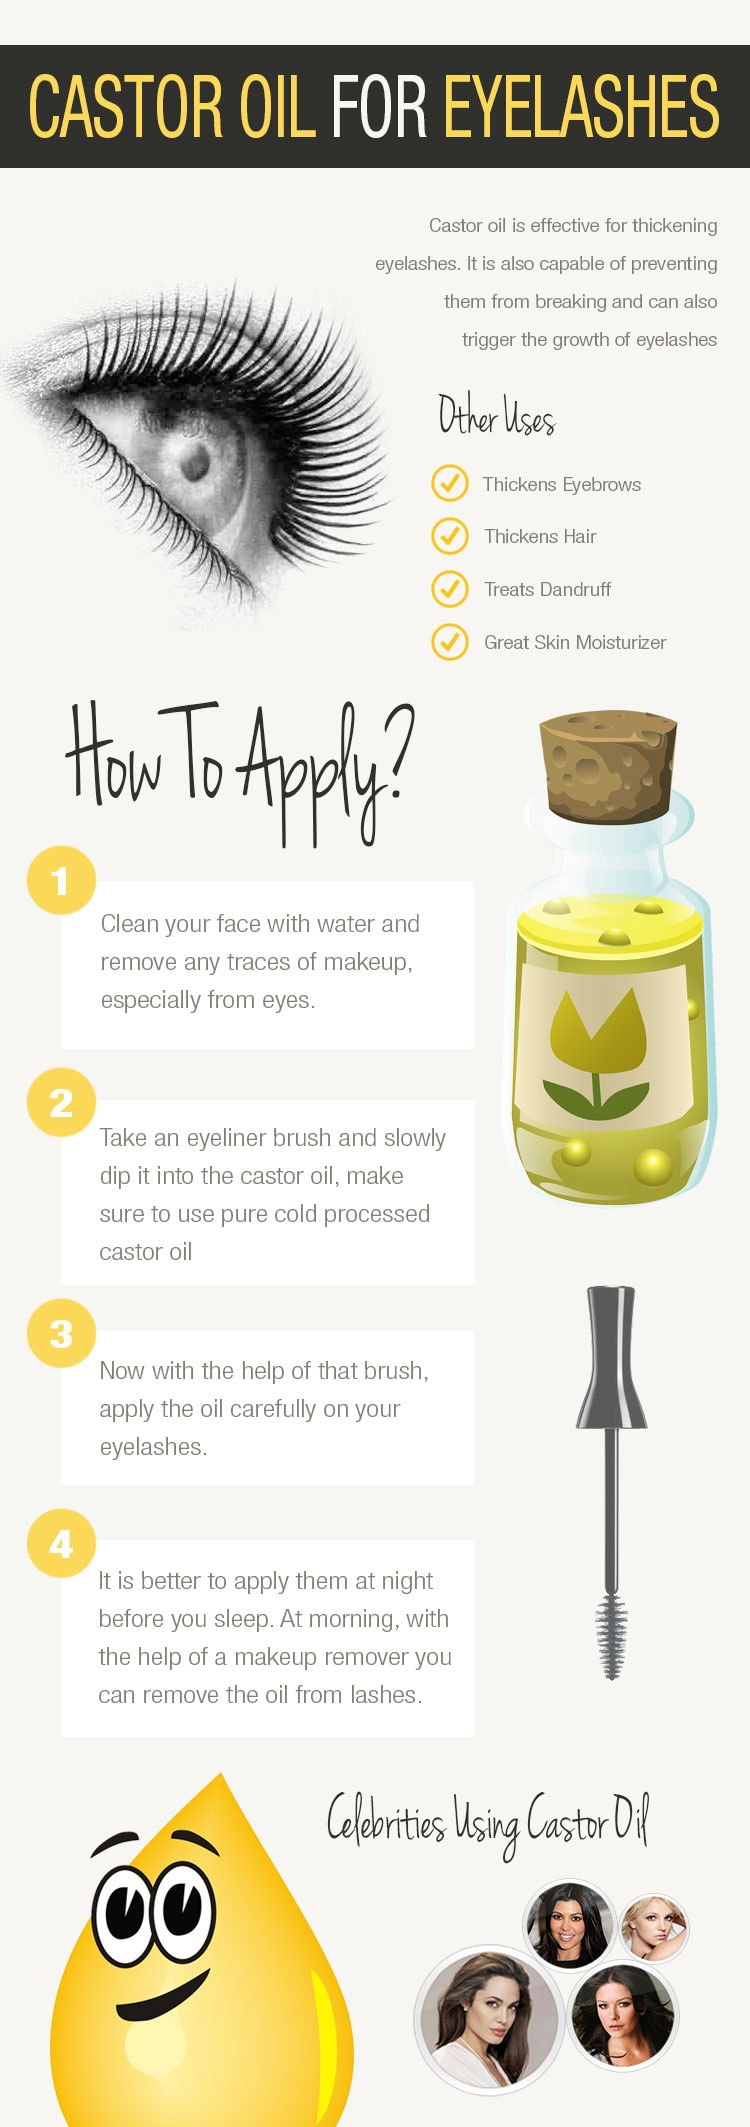 castor oil for lashes 1 - Castor Oil For Eyelashes To Make Longer And Thicker